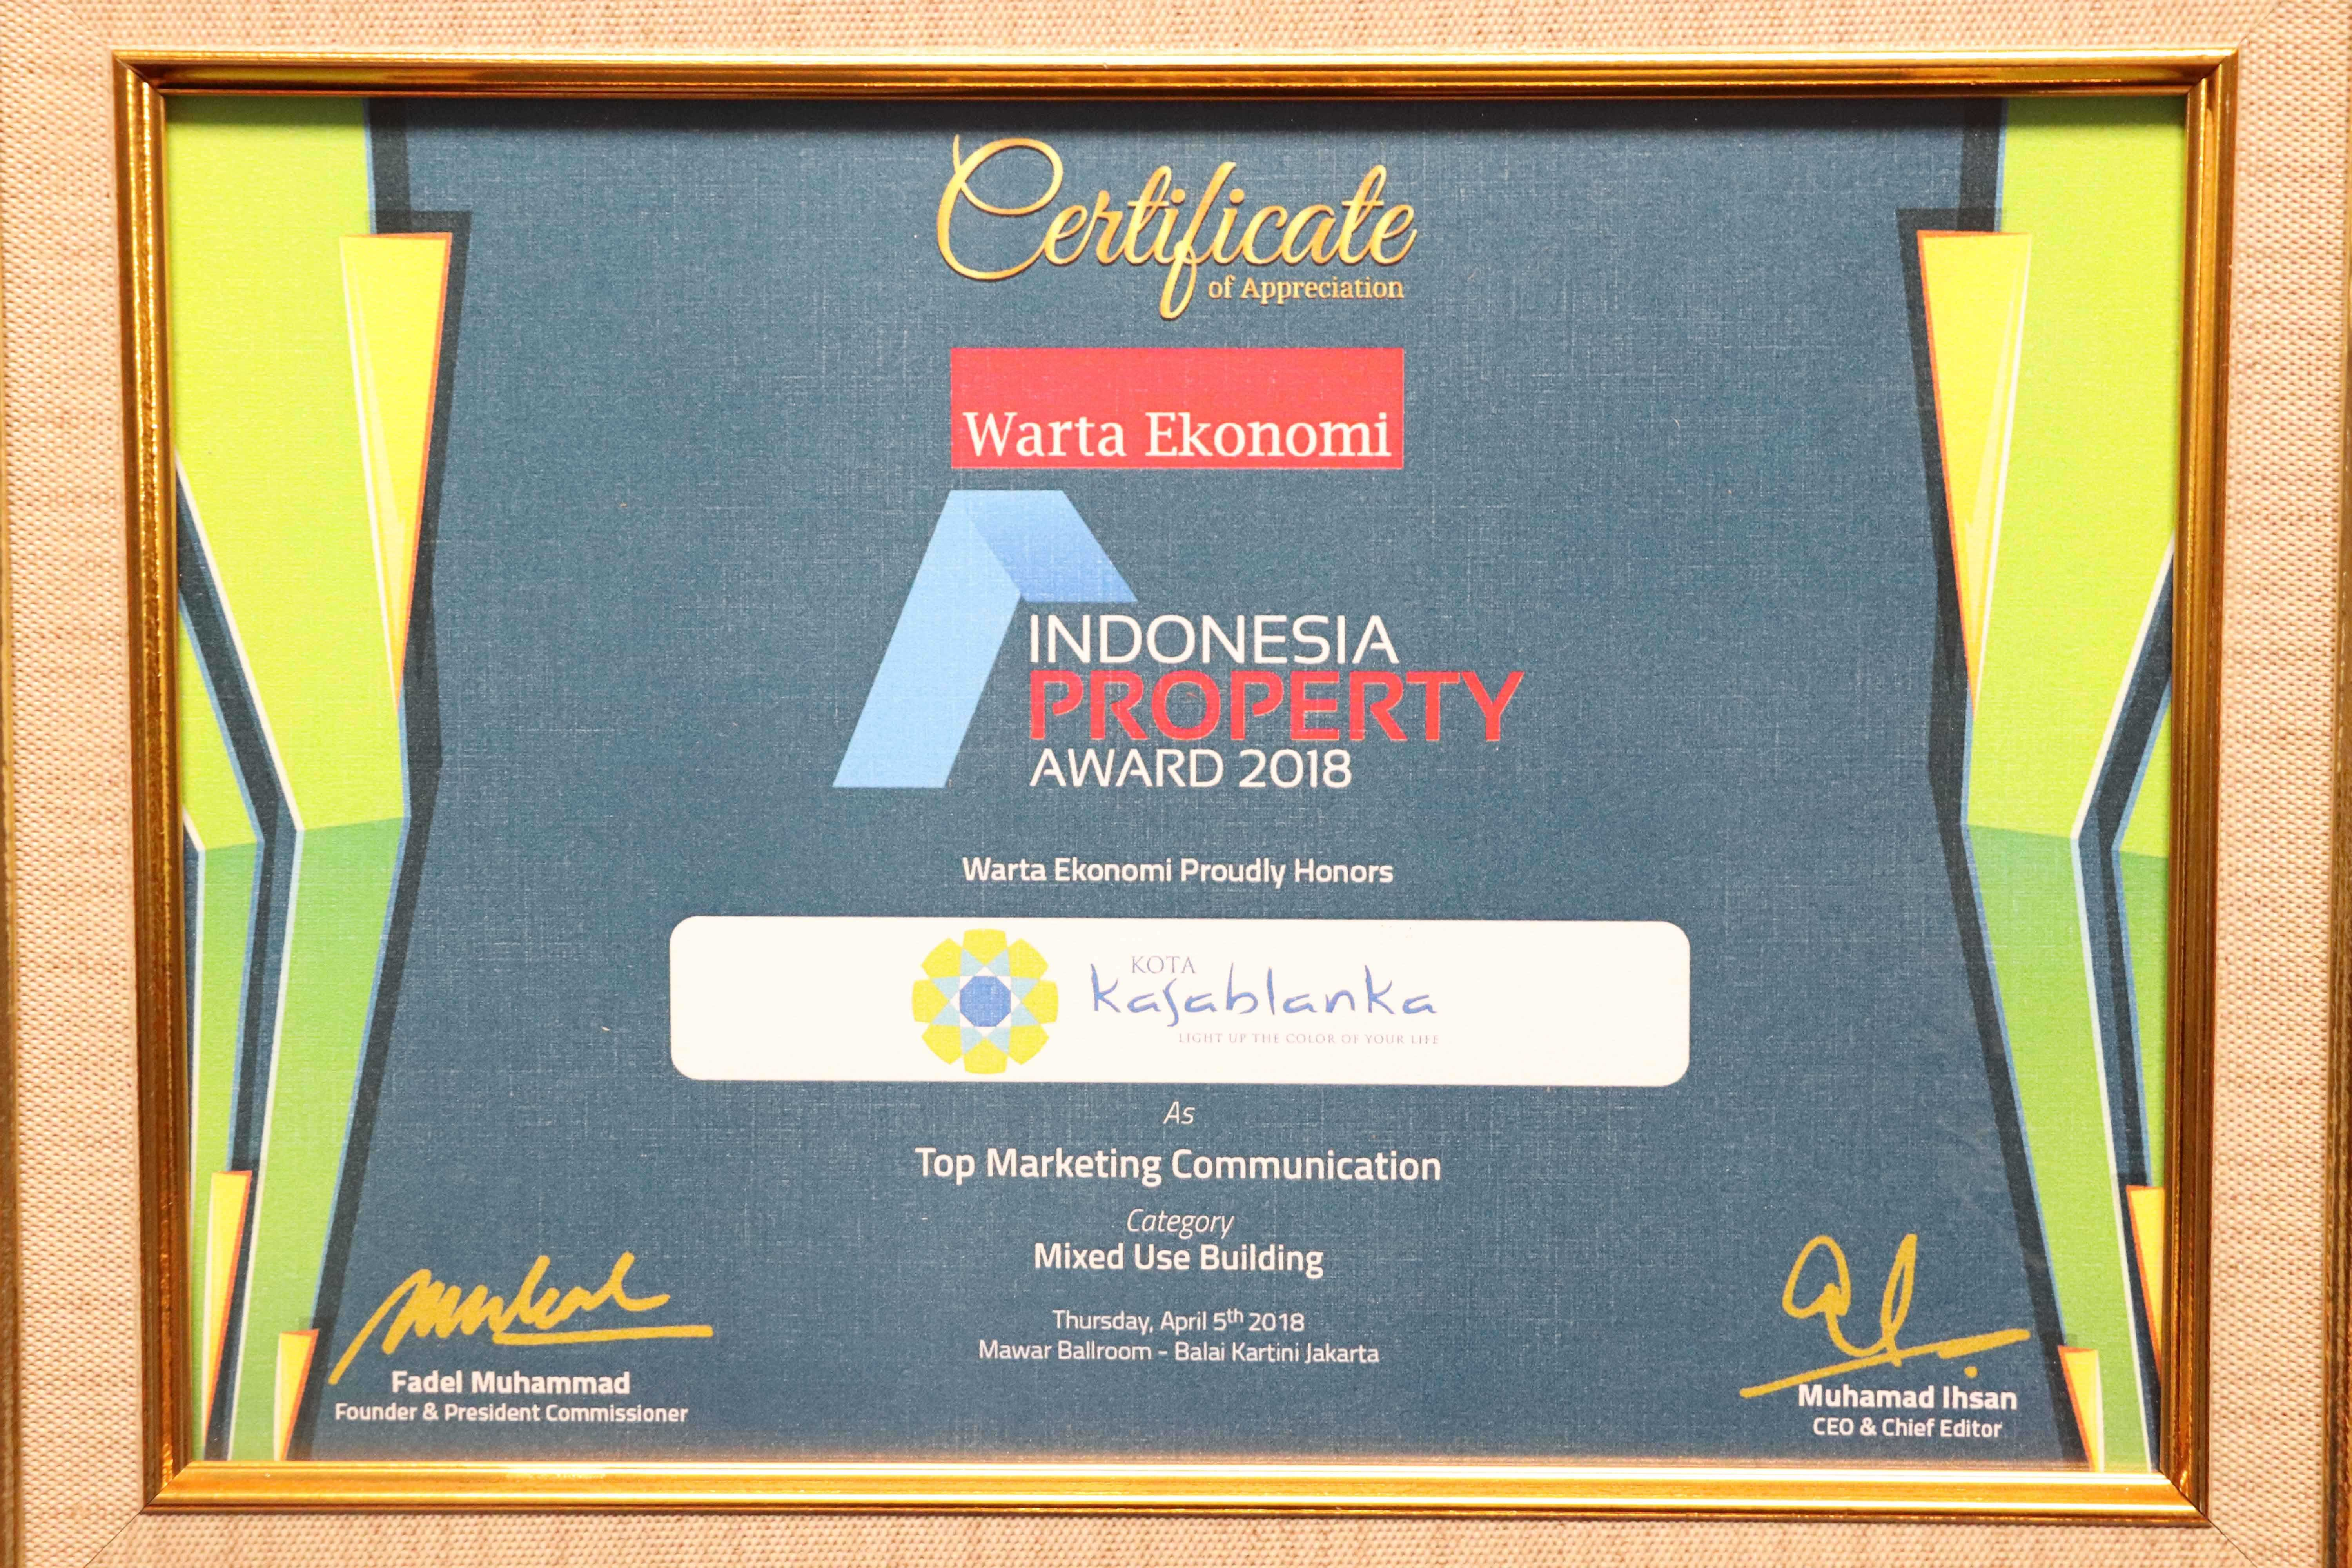 /public/files/image-companny/award-slider/7.WartaEkonomiIndonesiaPropertyAward2018-KotakasablankaasTopMarketingCommunication-April2018Copy.jpg